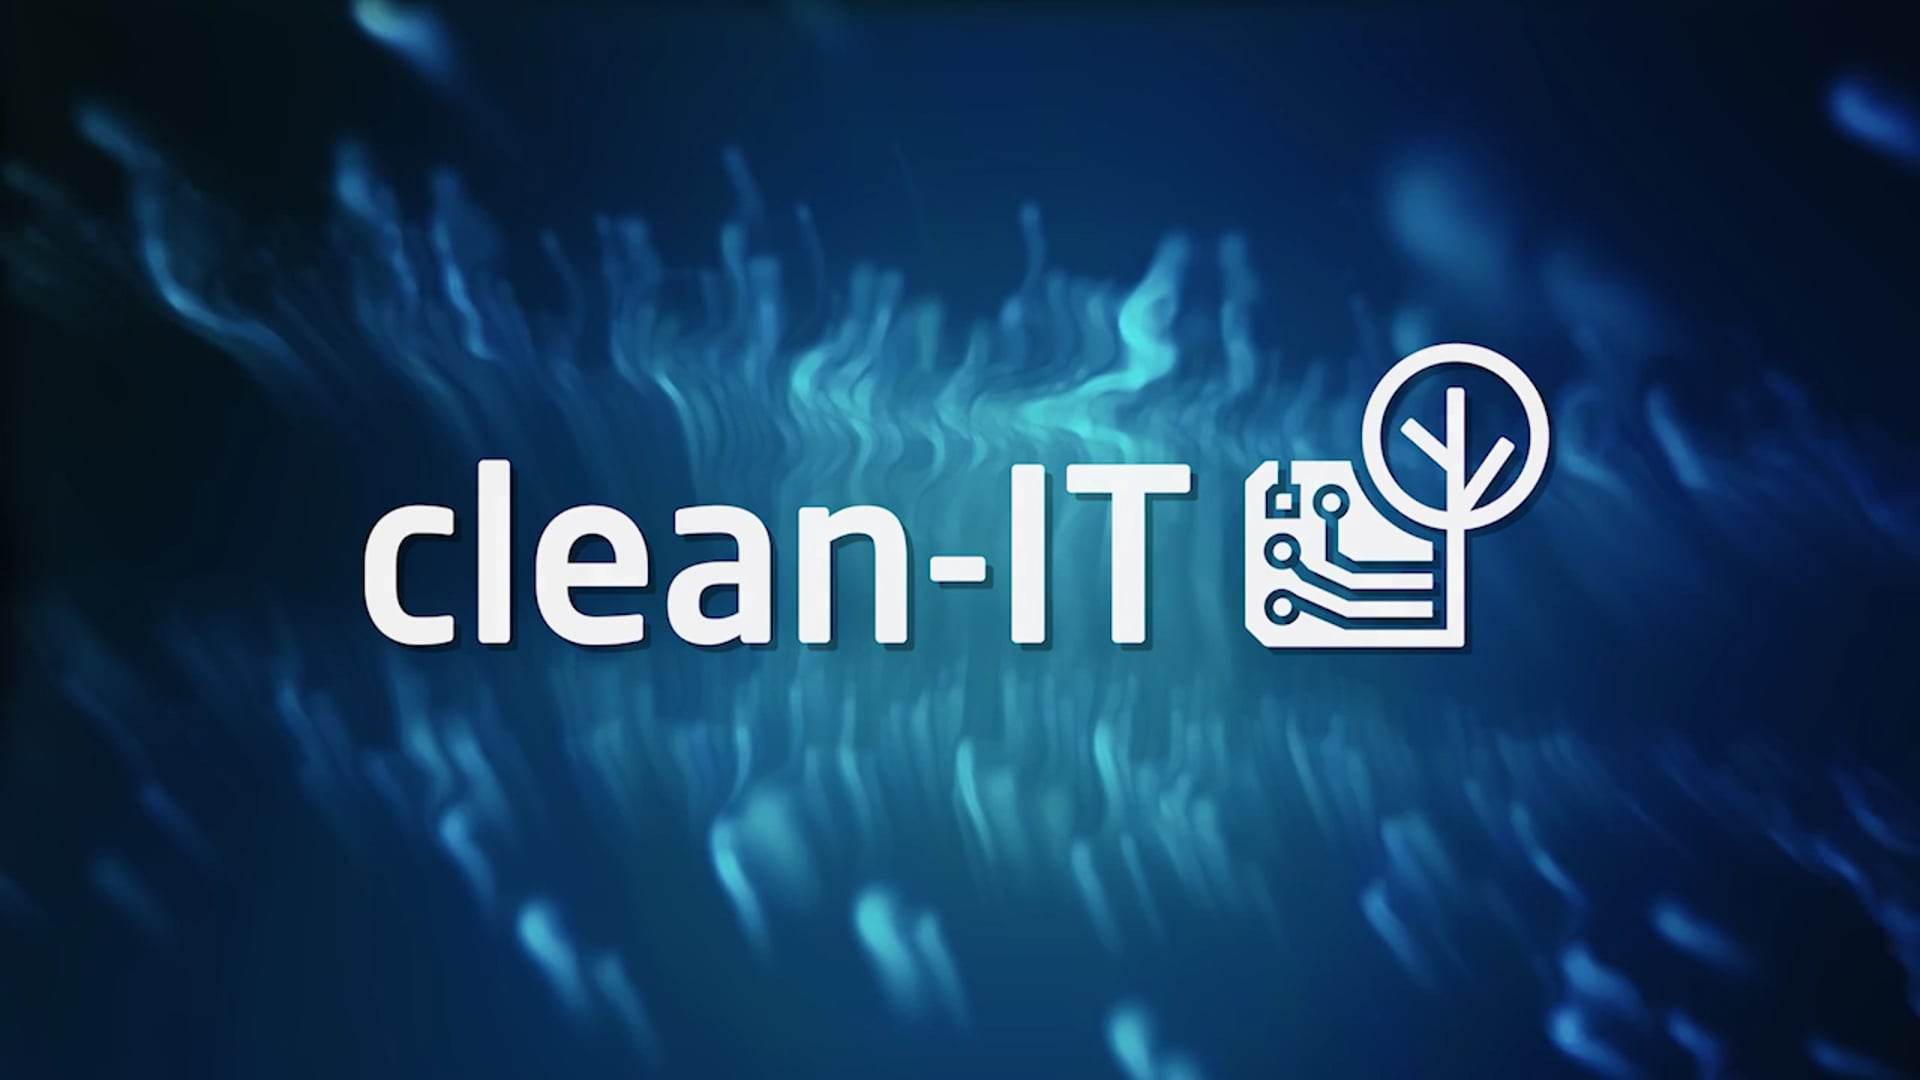 Christoph Meinel (HPI) - Introducing the clean-IT-initiative